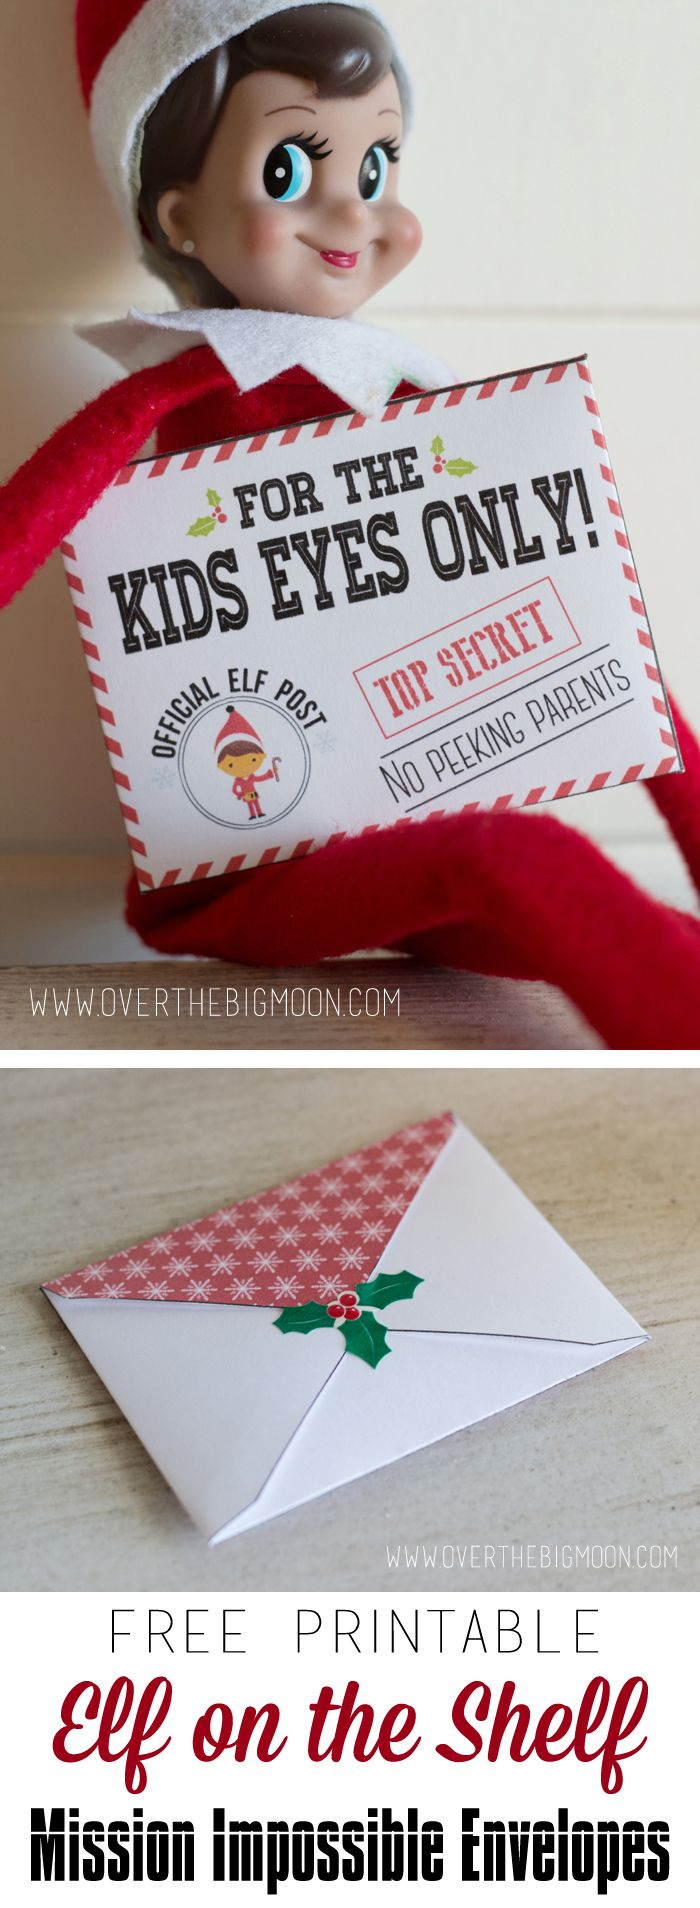 Elf On The Shelf Mission Impossible Envelopes And Cards  Big Moon